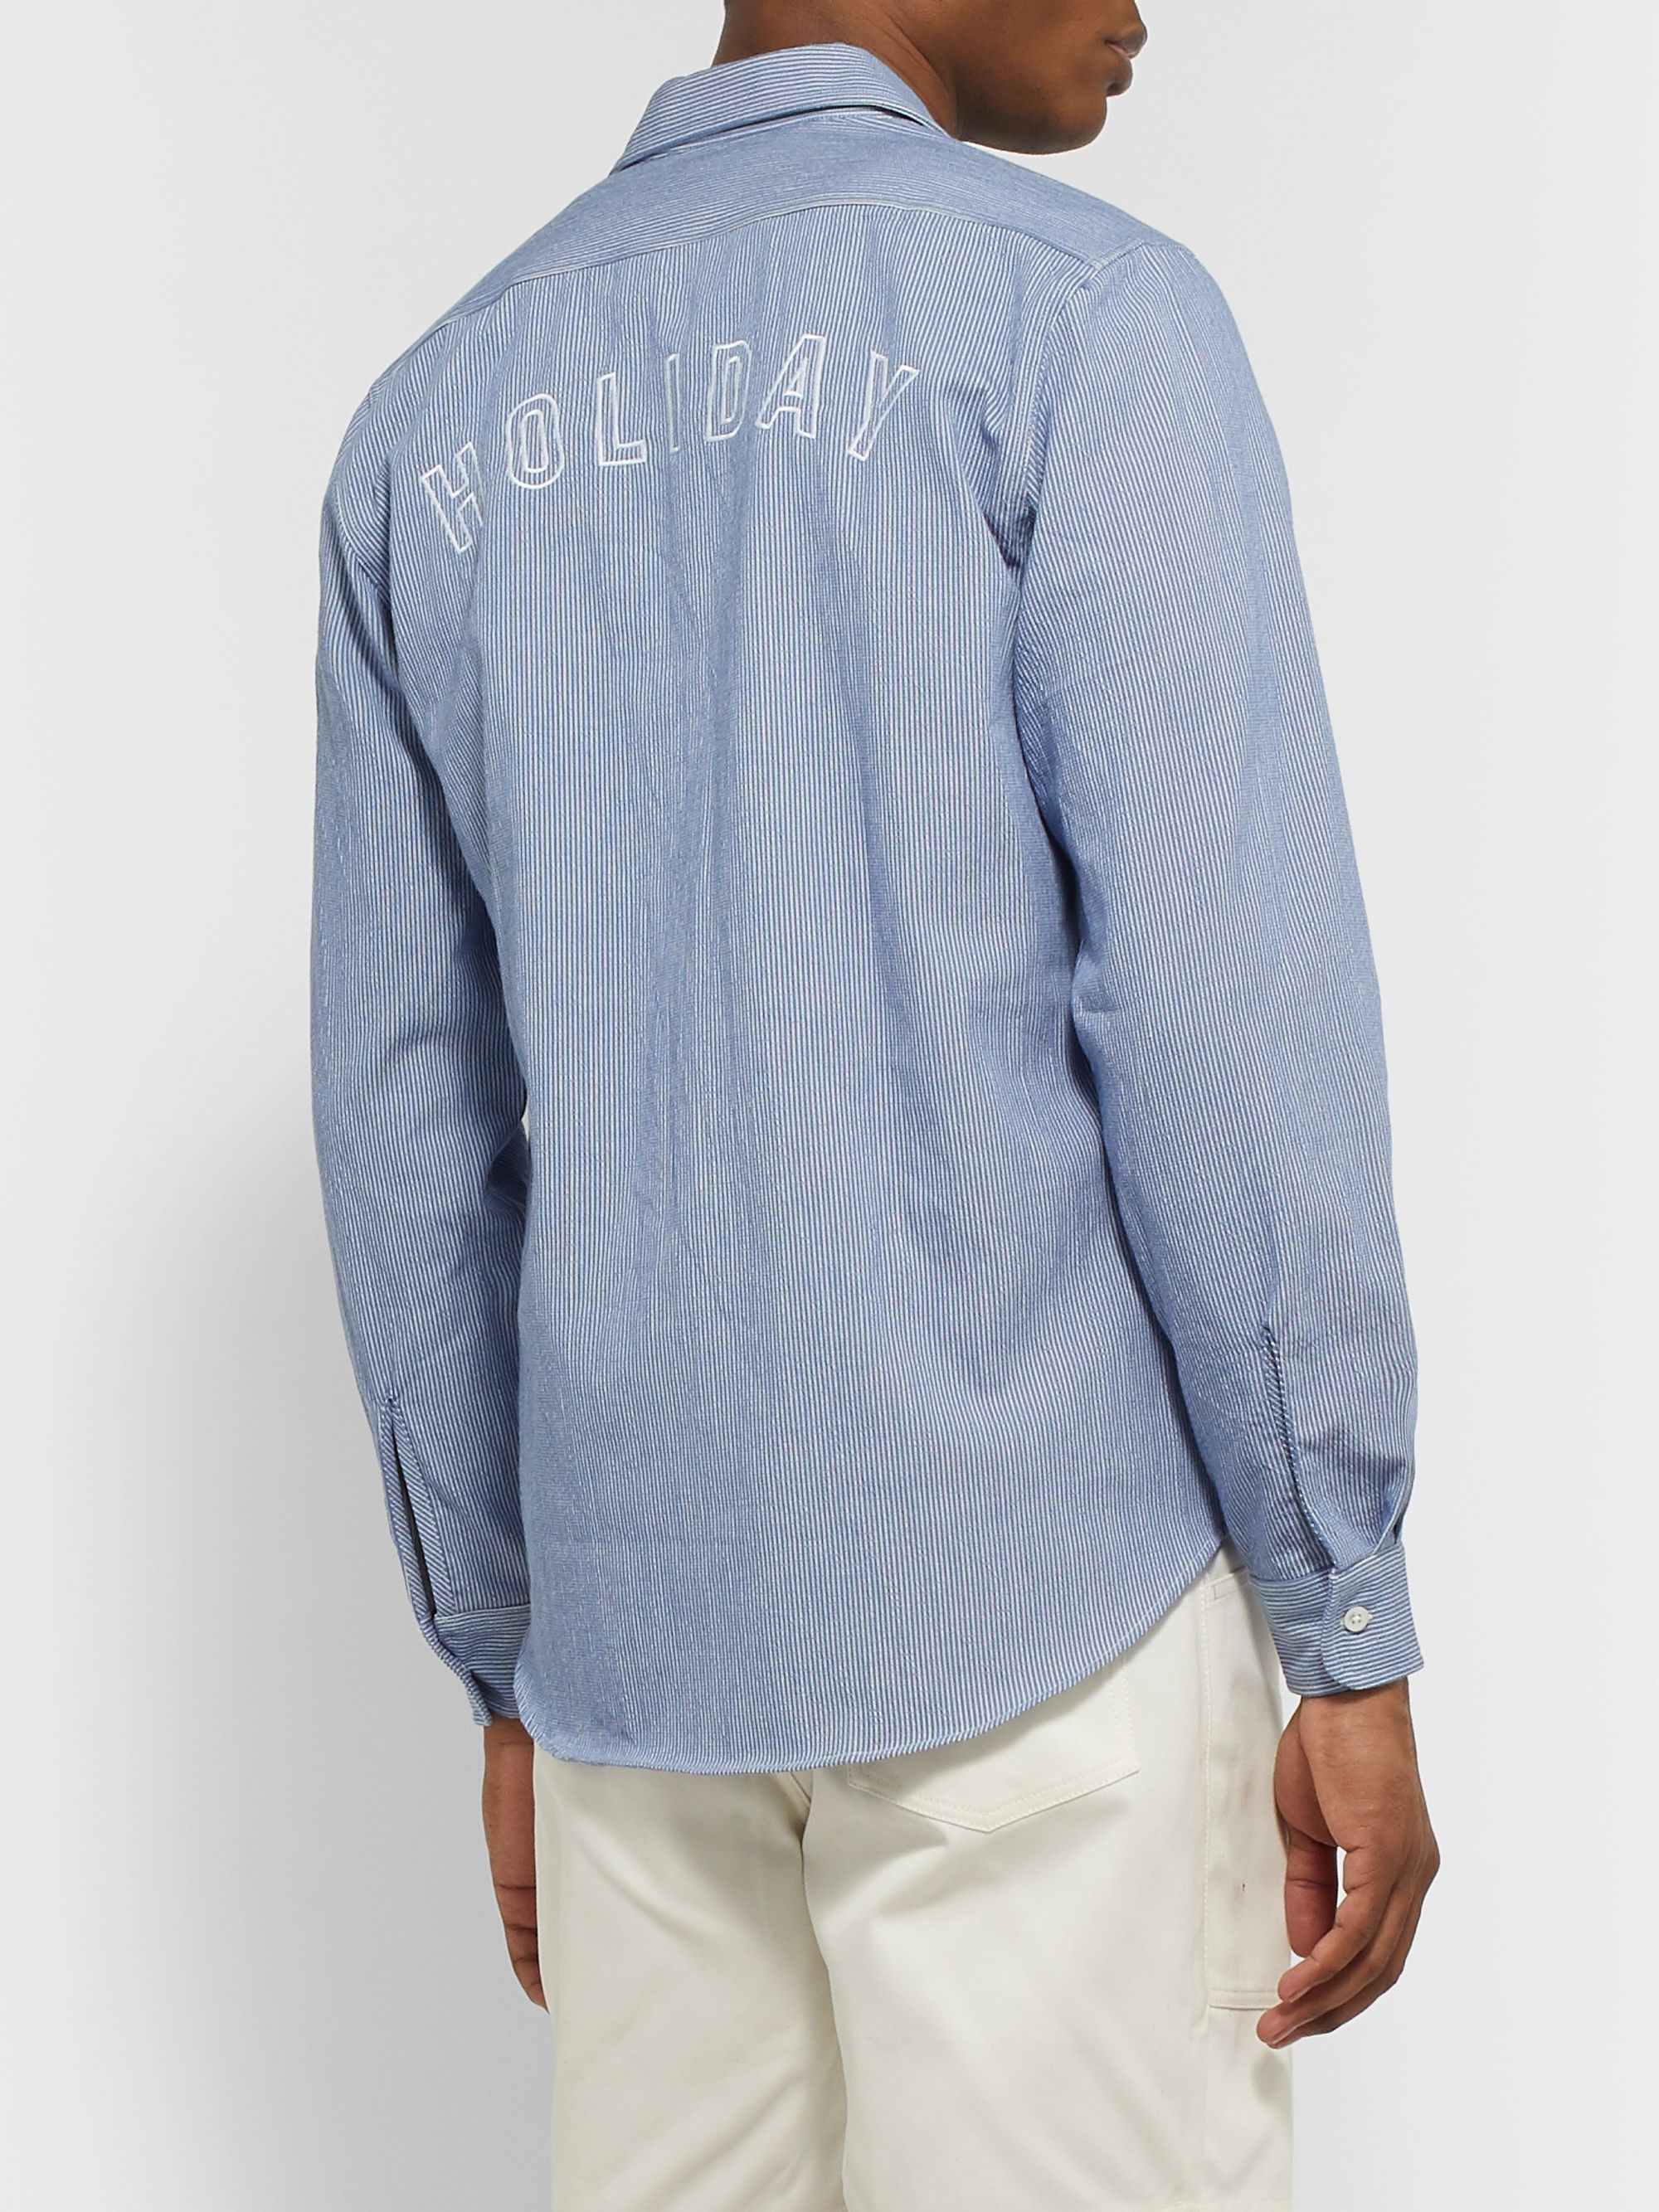 Holiday Boileau Logo-Embroidered Pinstriped Cotton Shirt